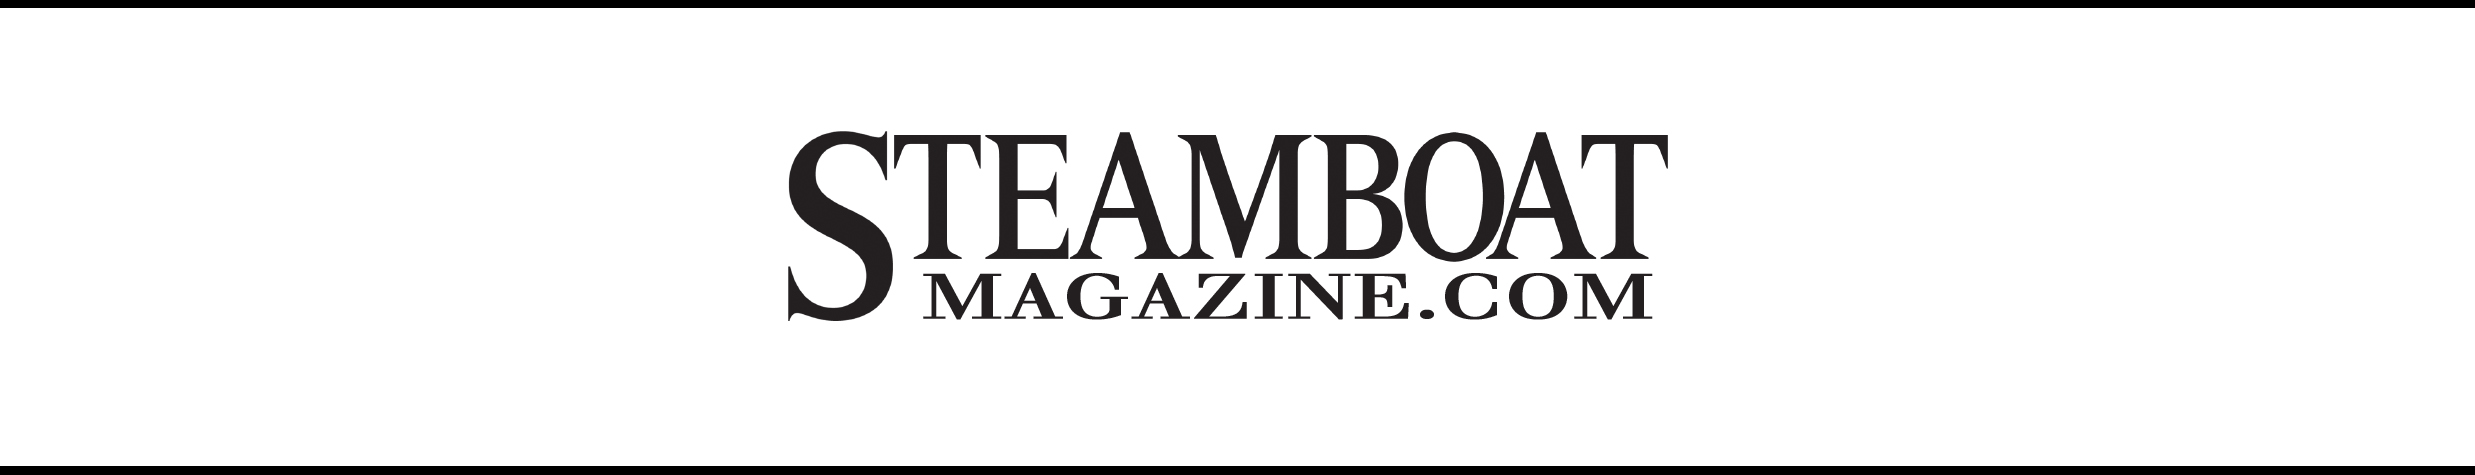 Sincere Services – Replenish IV Therapies | Steamboat Magazine